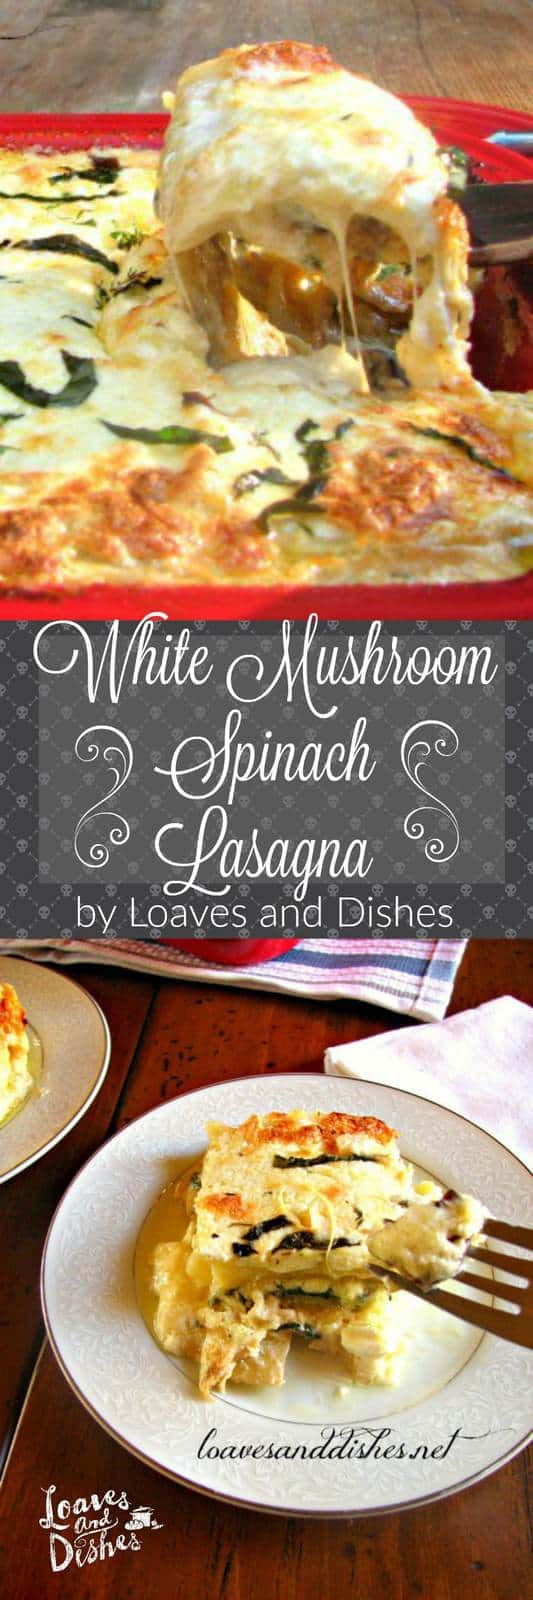 This recipe for White Mushroom Spinach Lasagna is the perfect dish for guests - vegetarian or not!  So filling and cheesy.  Easy to make. Delight your friends!